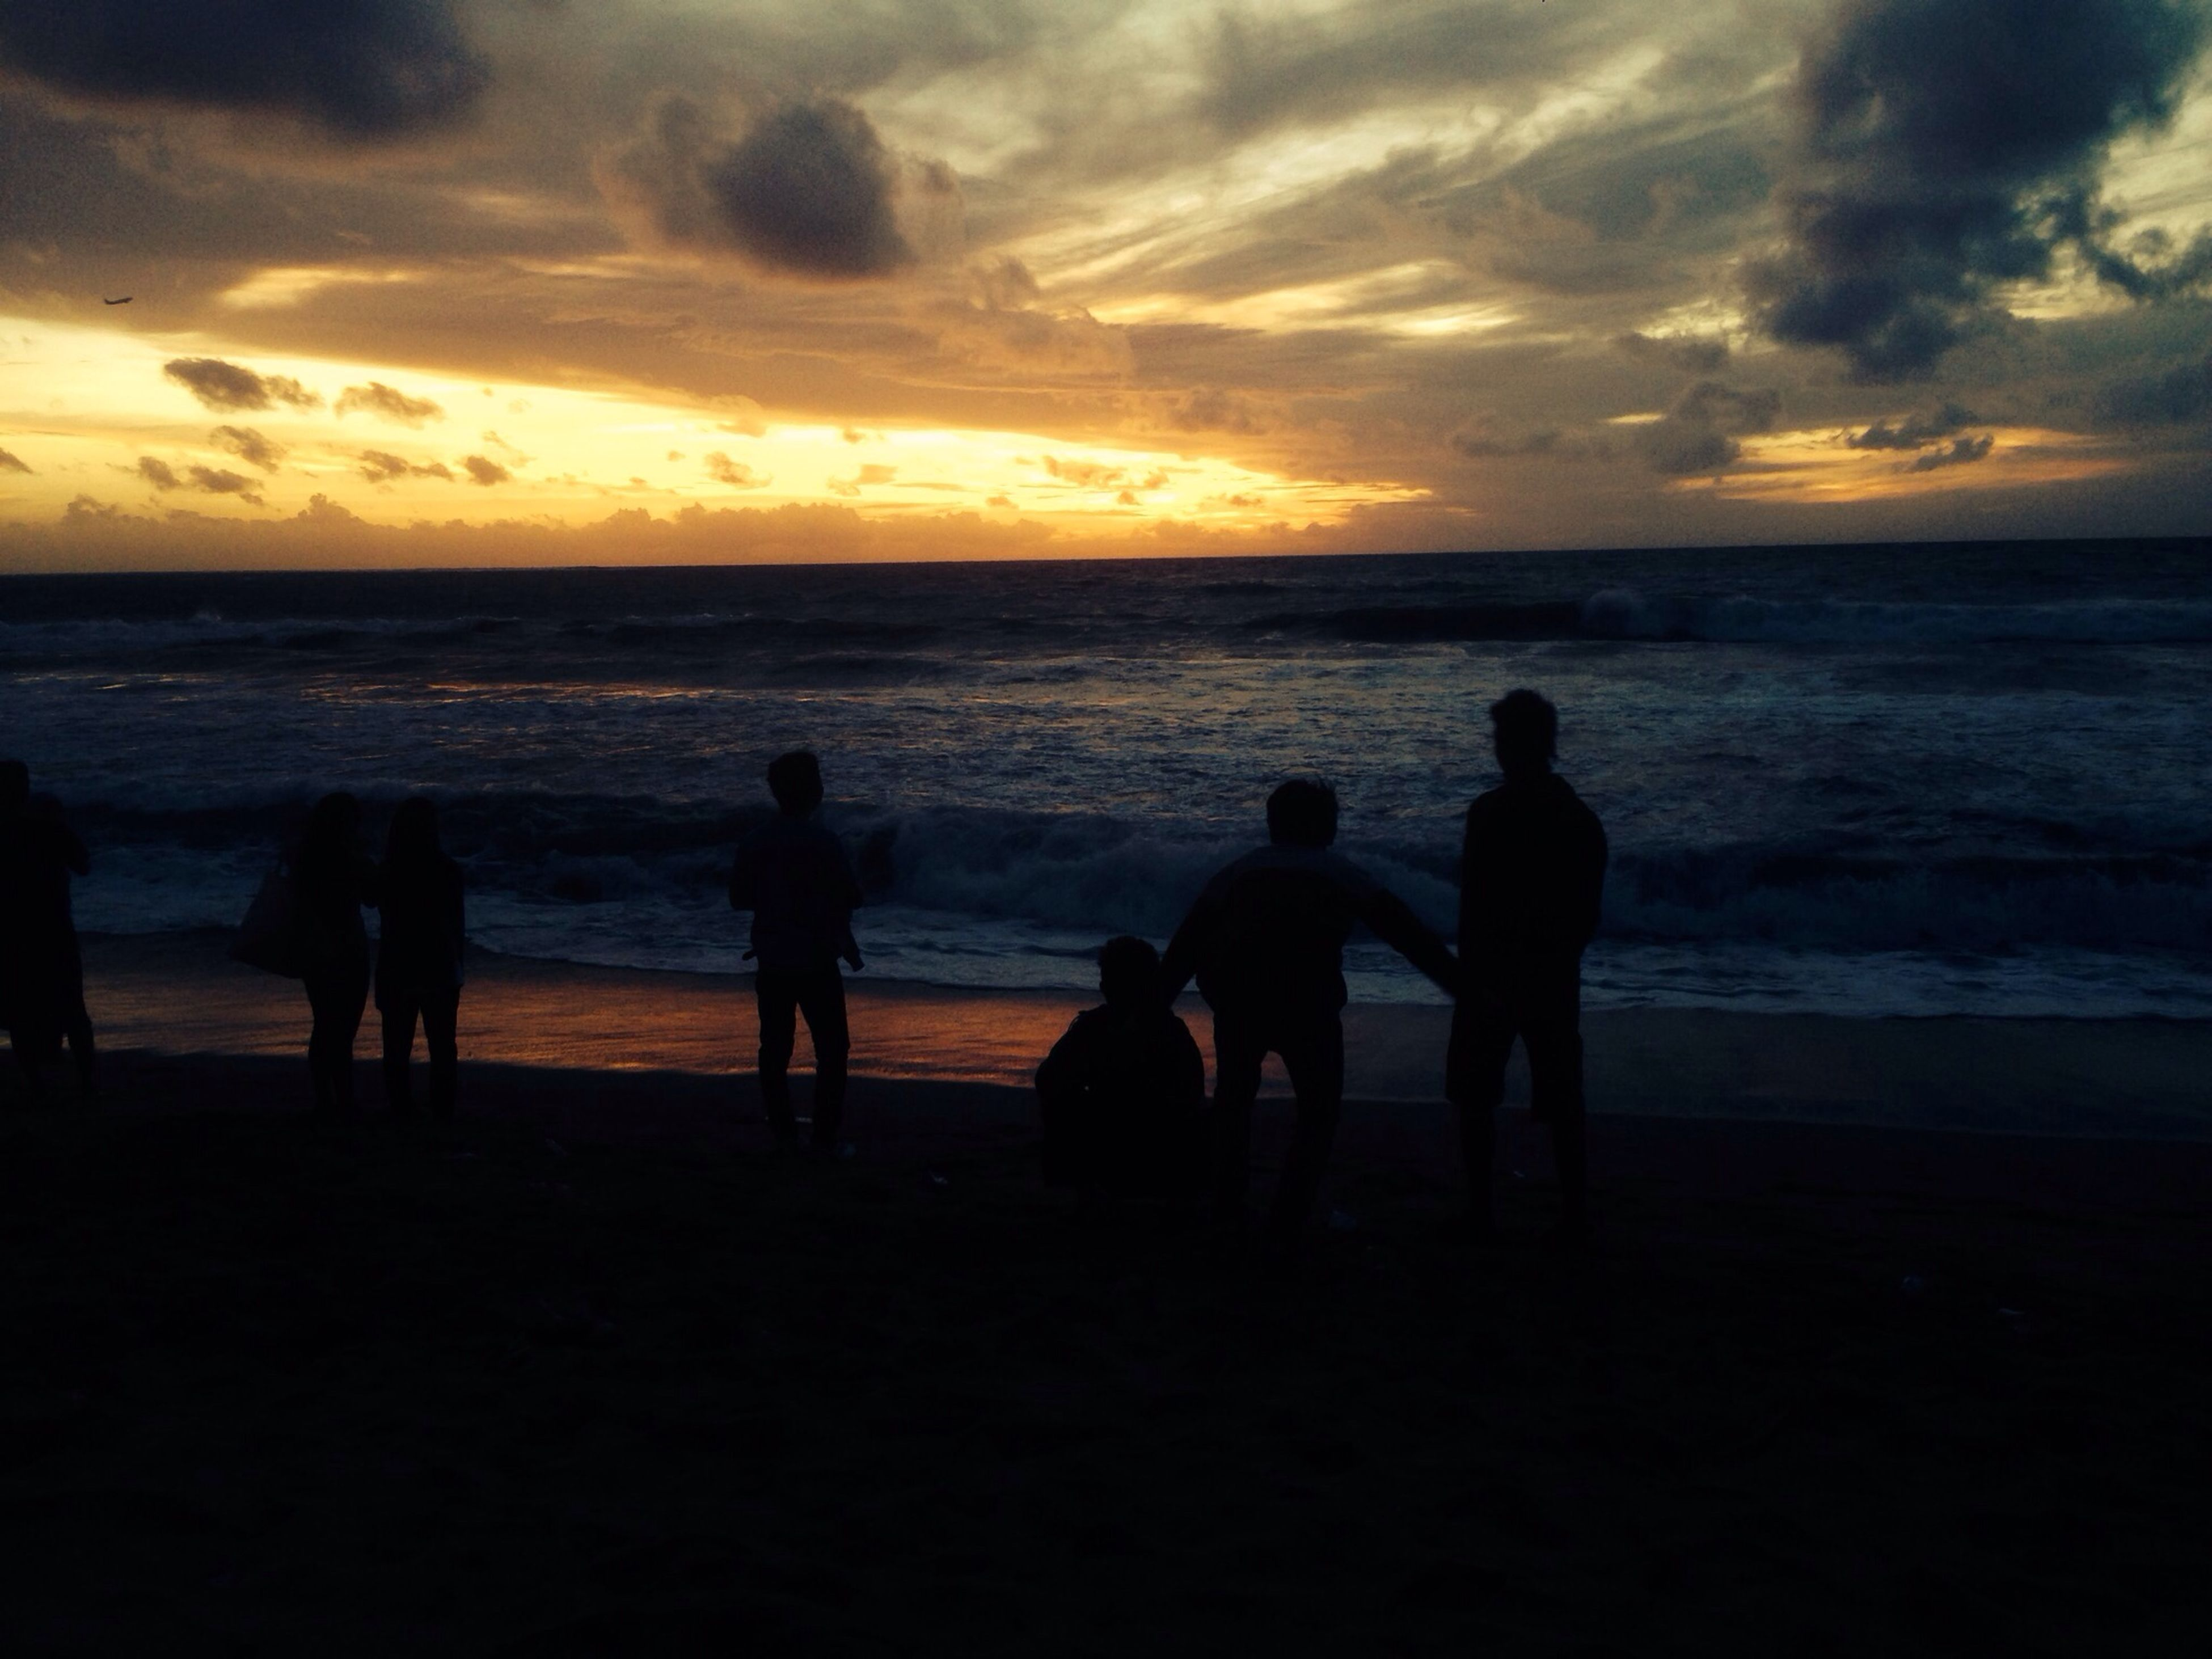 sea, sunset, water, horizon over water, sky, silhouette, beach, togetherness, leisure activity, men, lifestyles, shore, scenics, beauty in nature, cloud - sky, person, vacations, bonding, orange color